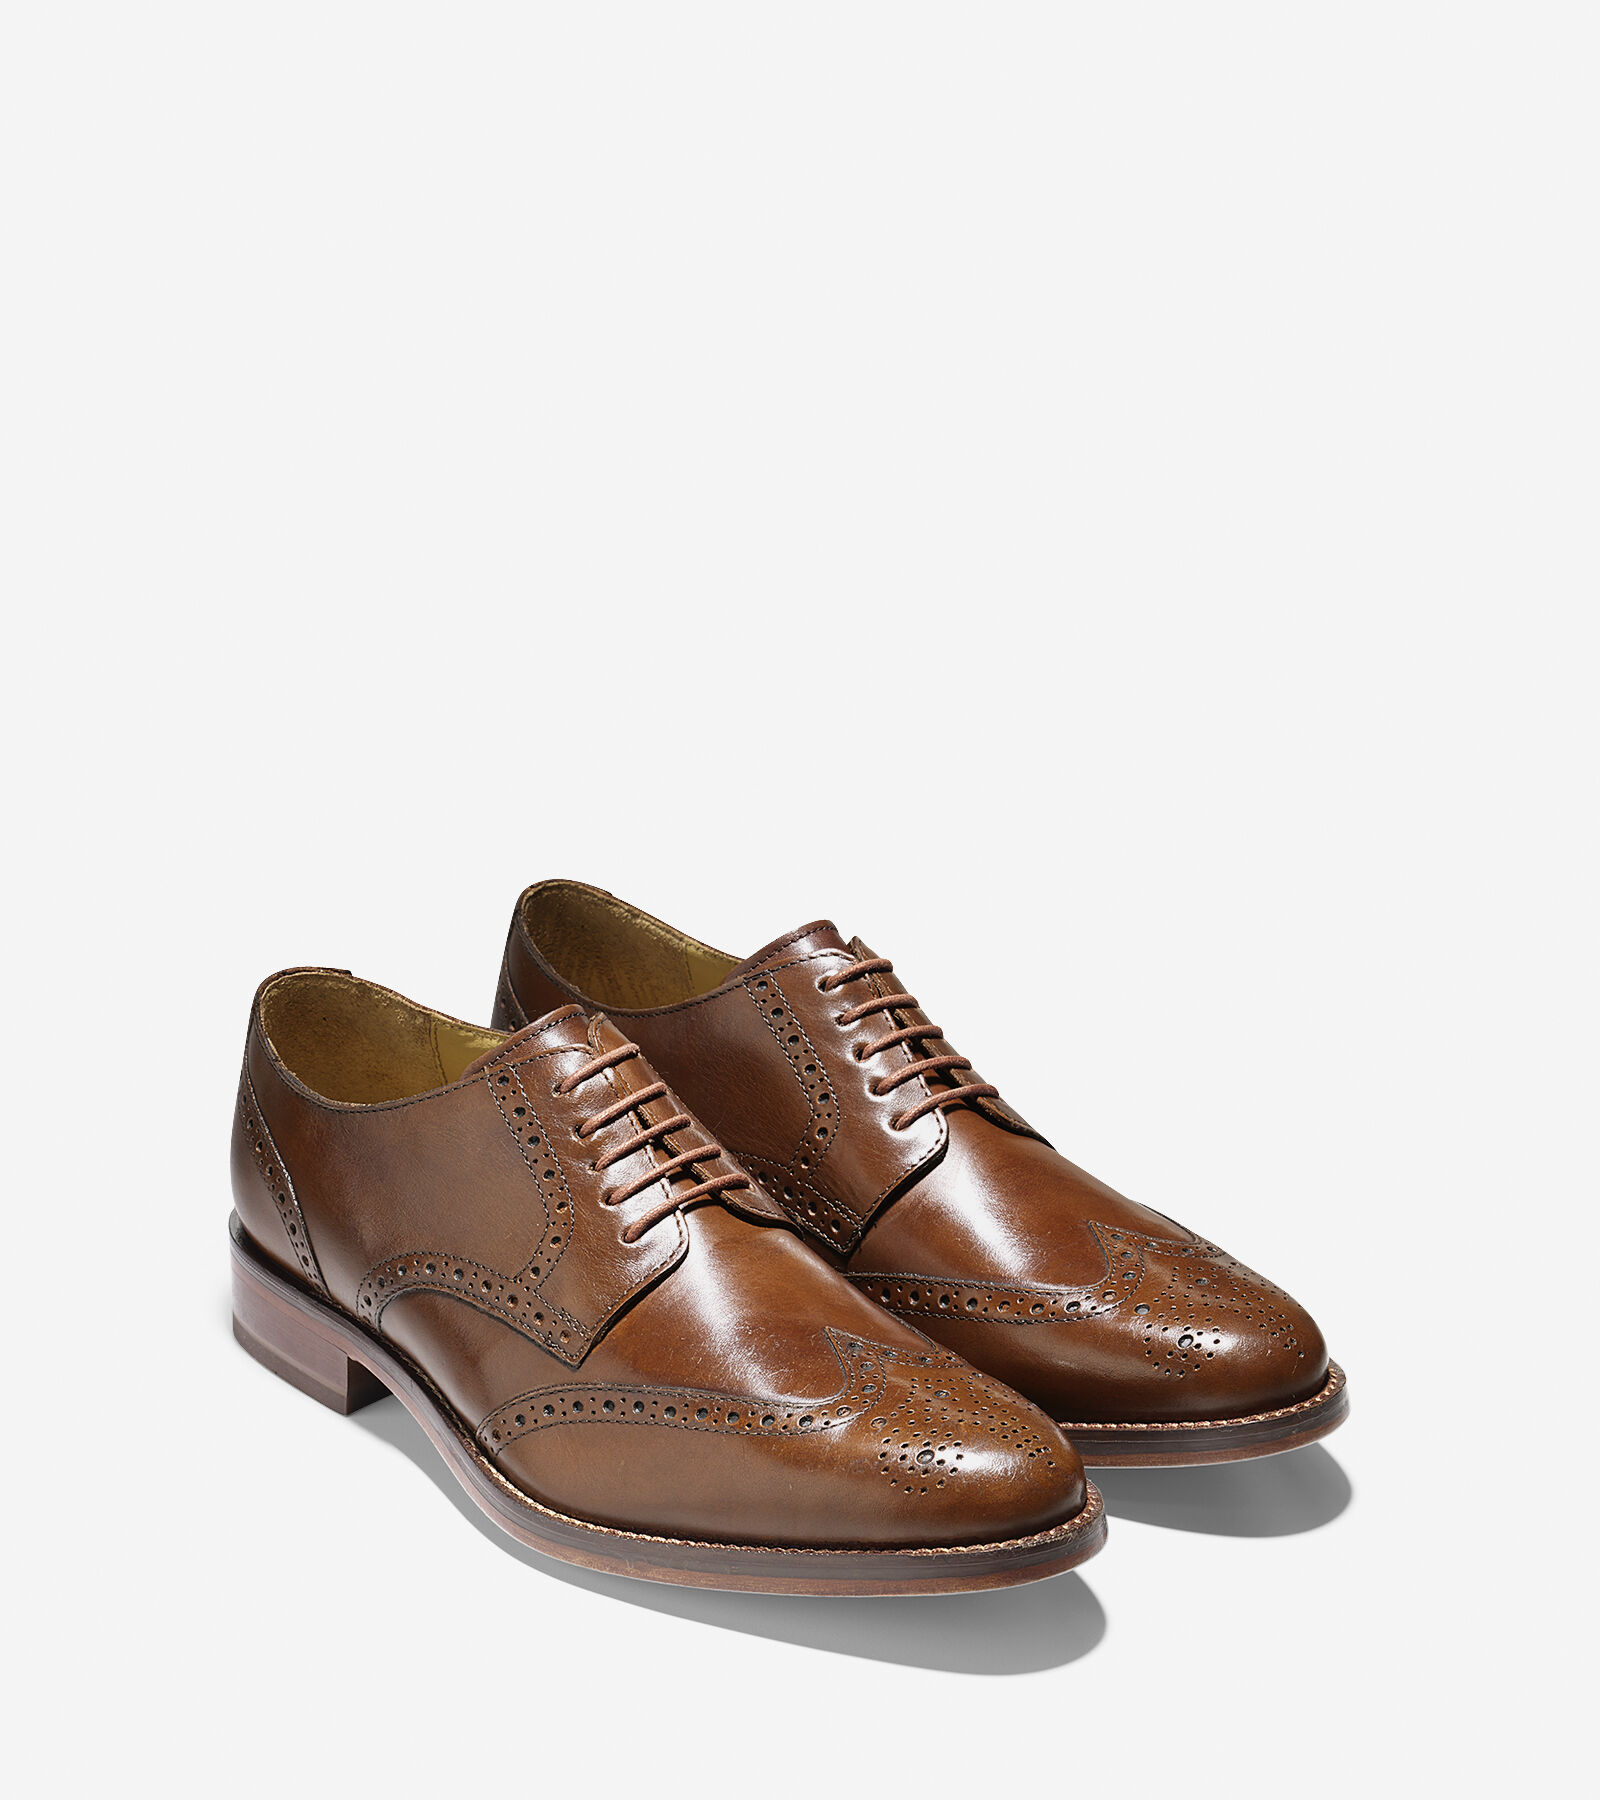 cole haan shoes used as headstones band official 696269